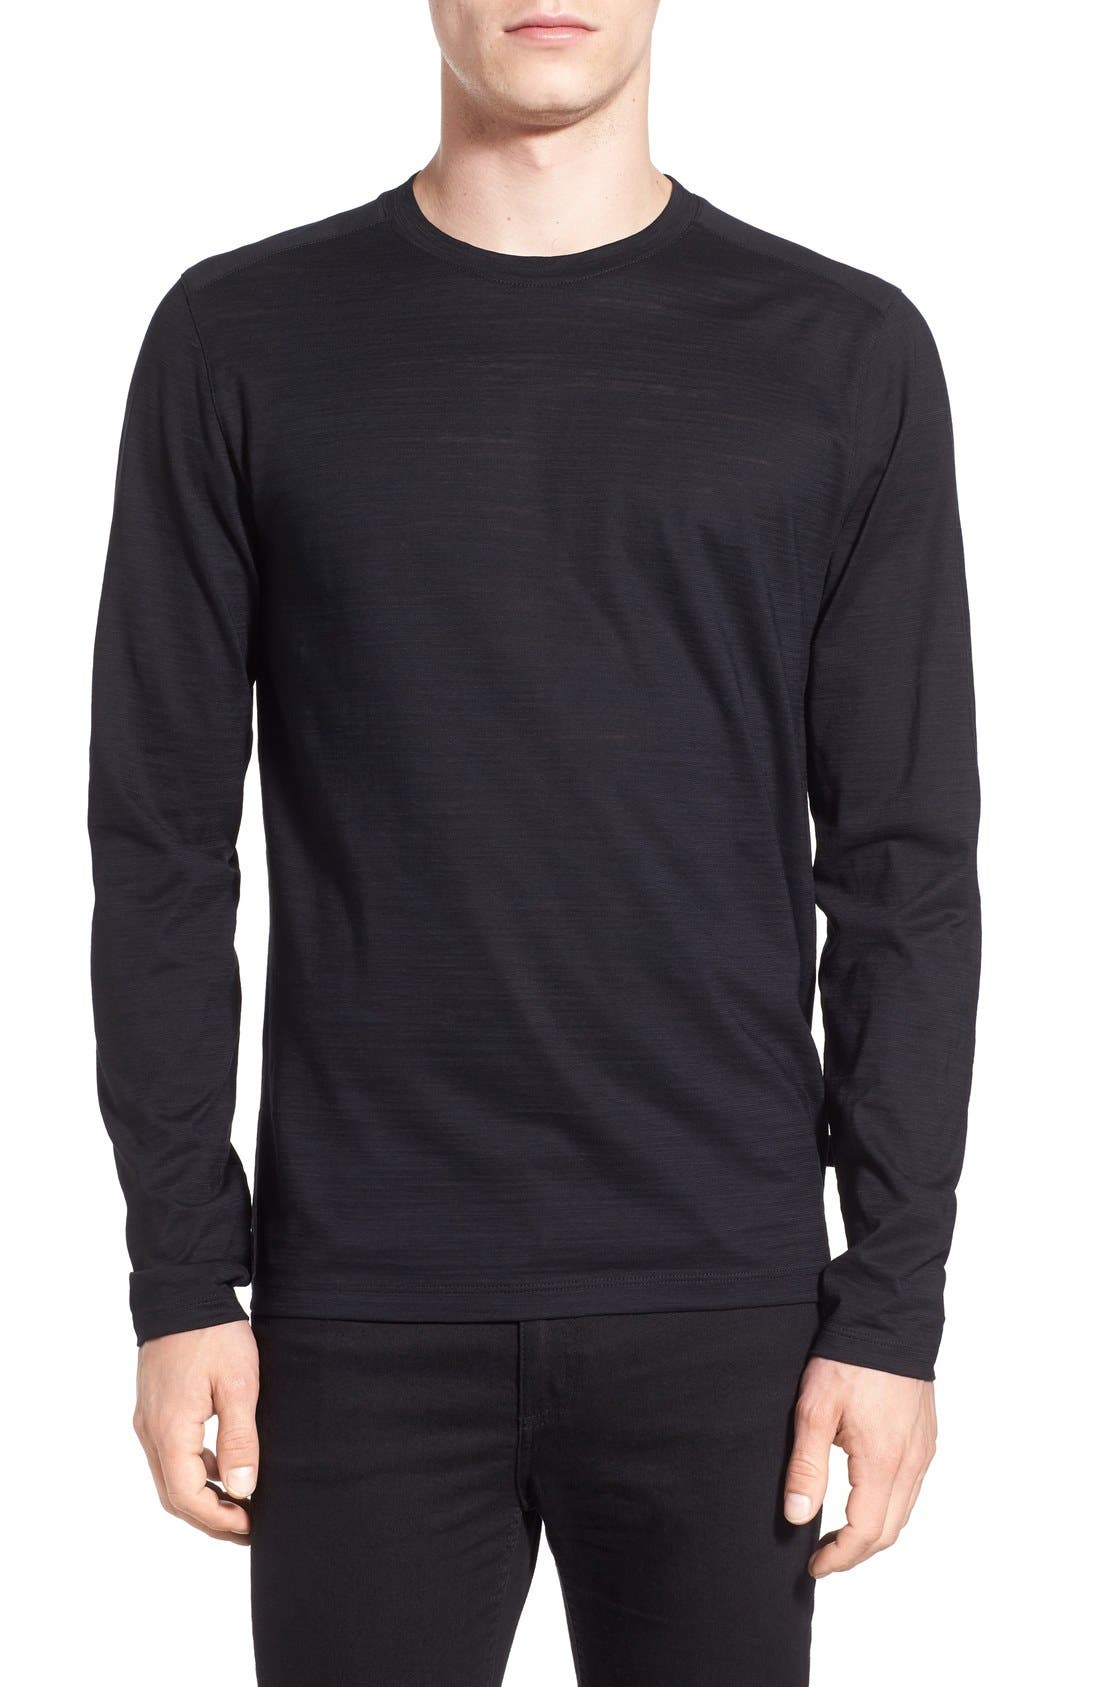 Main Image - BOSS 'Tenison' Slim Fit Long Sleeve T-Shirt